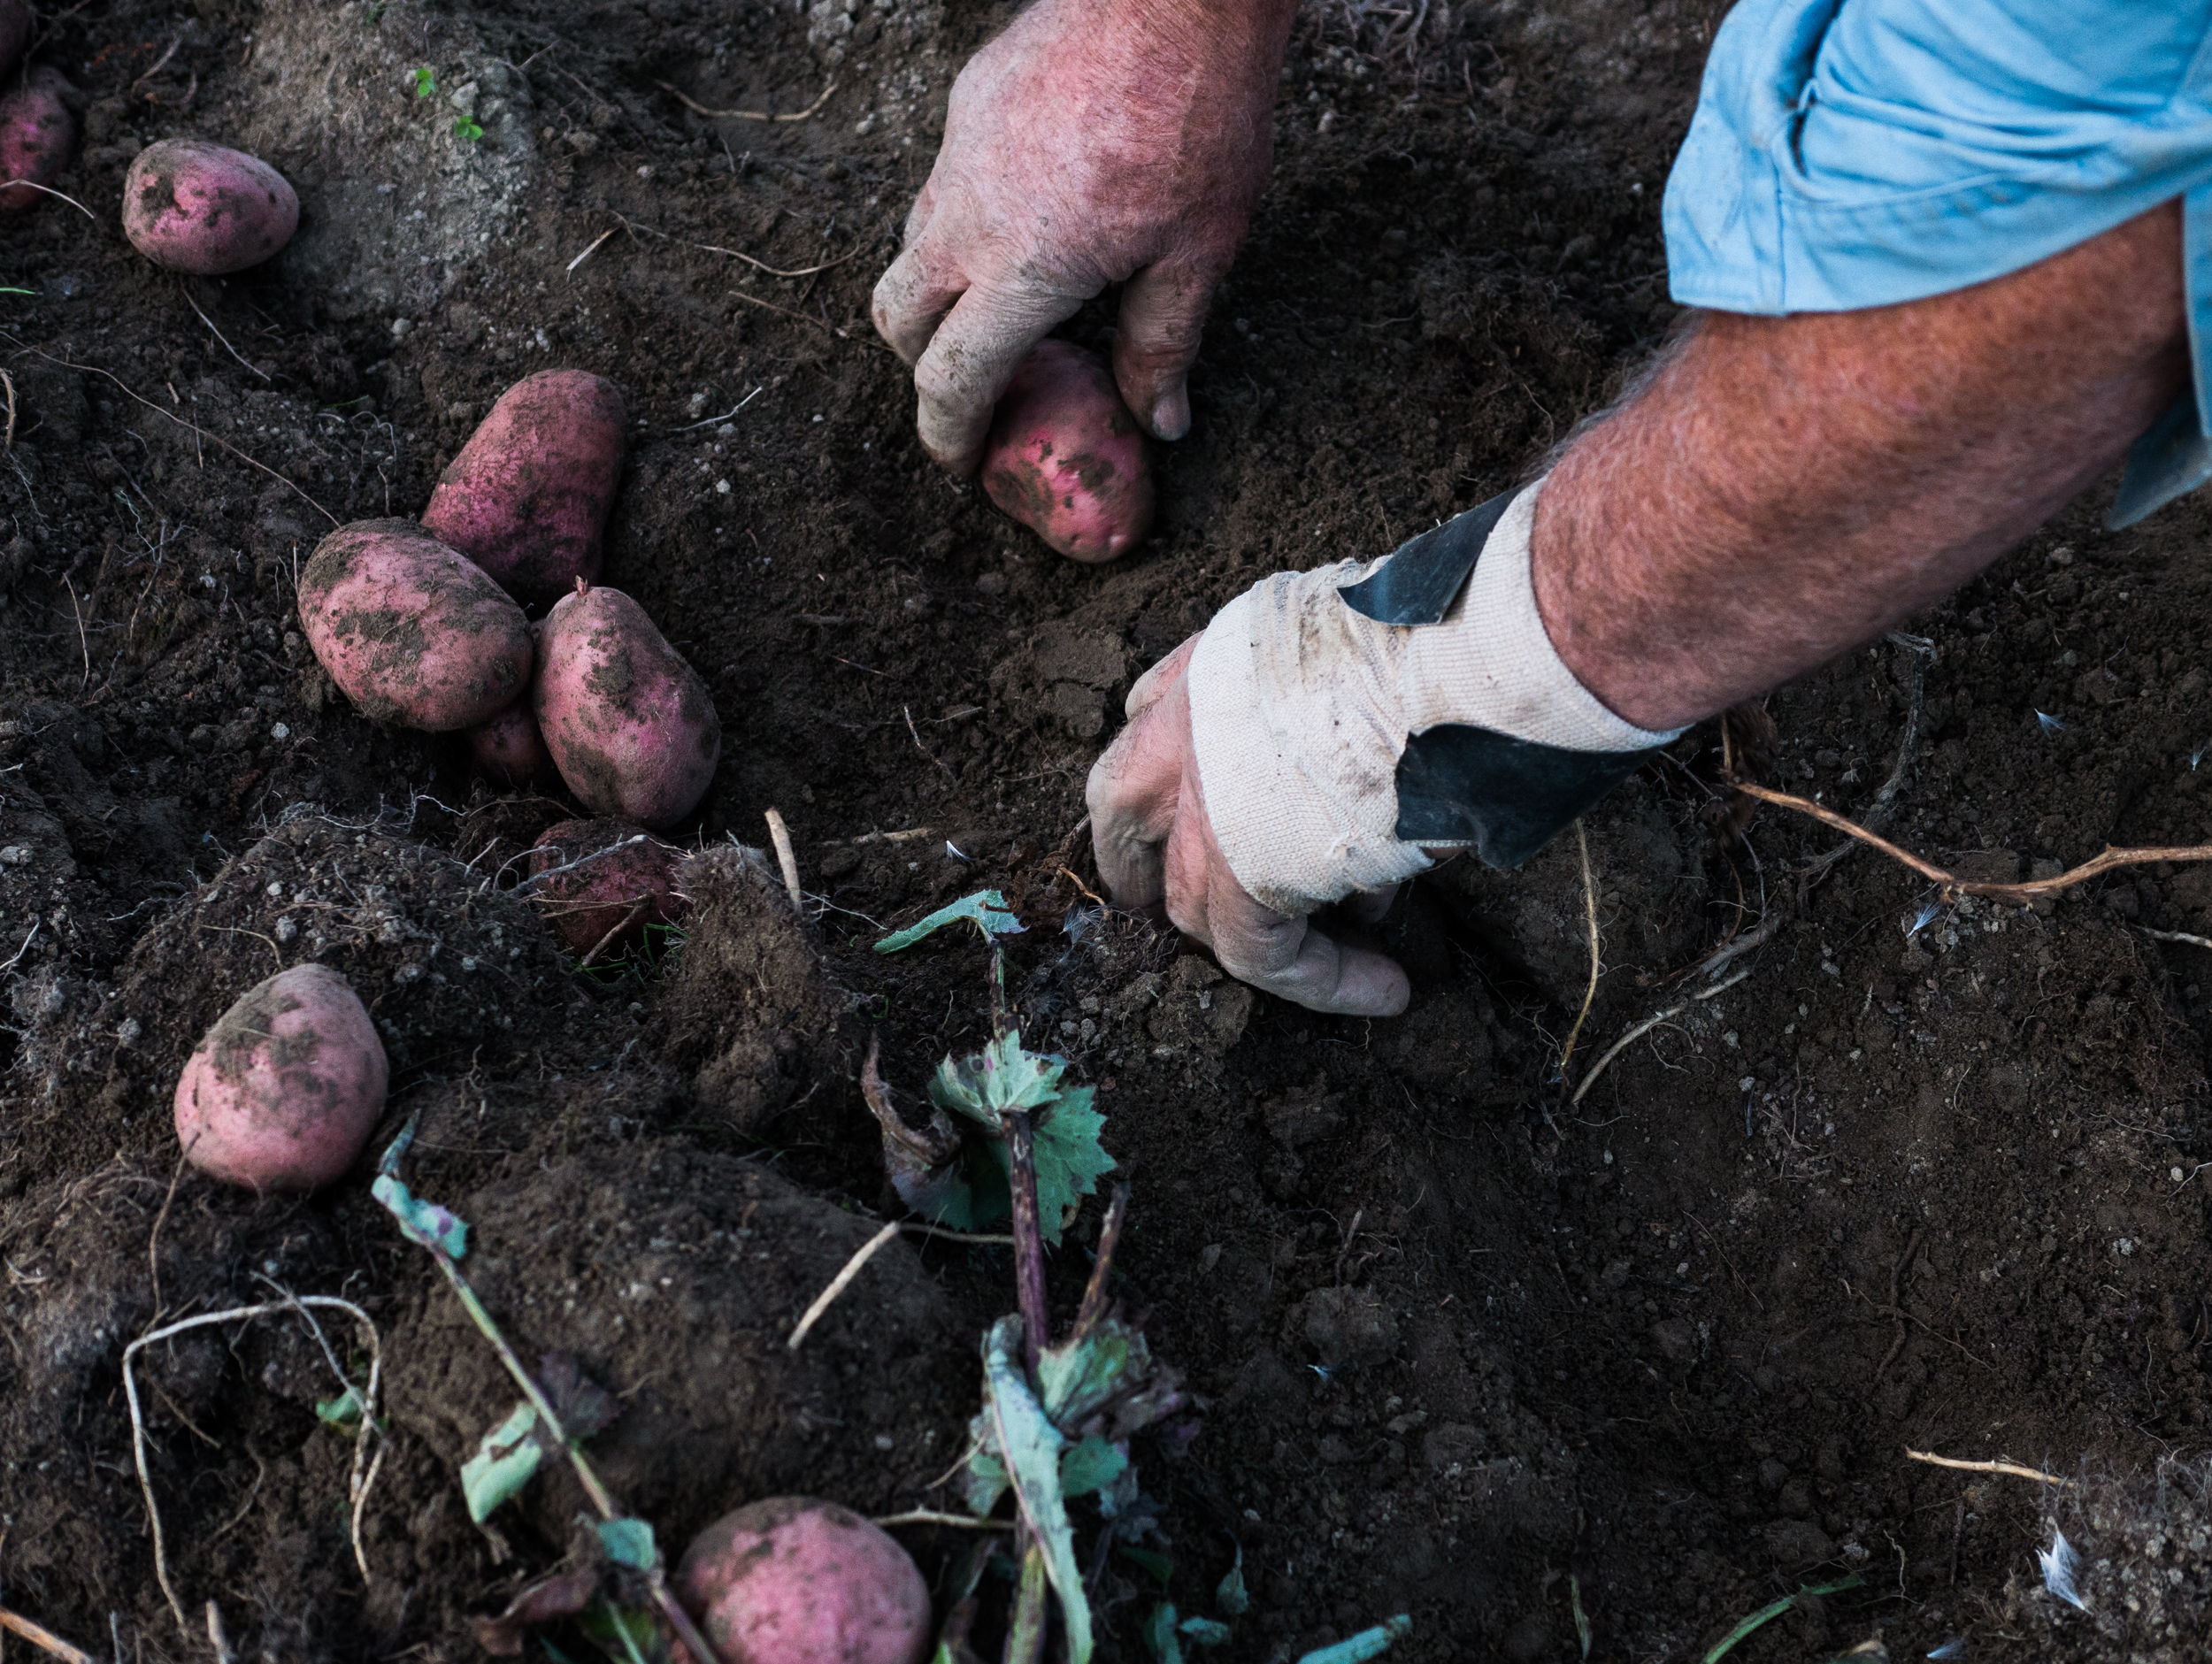 Vince pulls Red Nordland potatoes from the earth of one of his many fields. Aside from spuds he also grows a variety of other vegetables including carrots, corn, cabbage and onions.